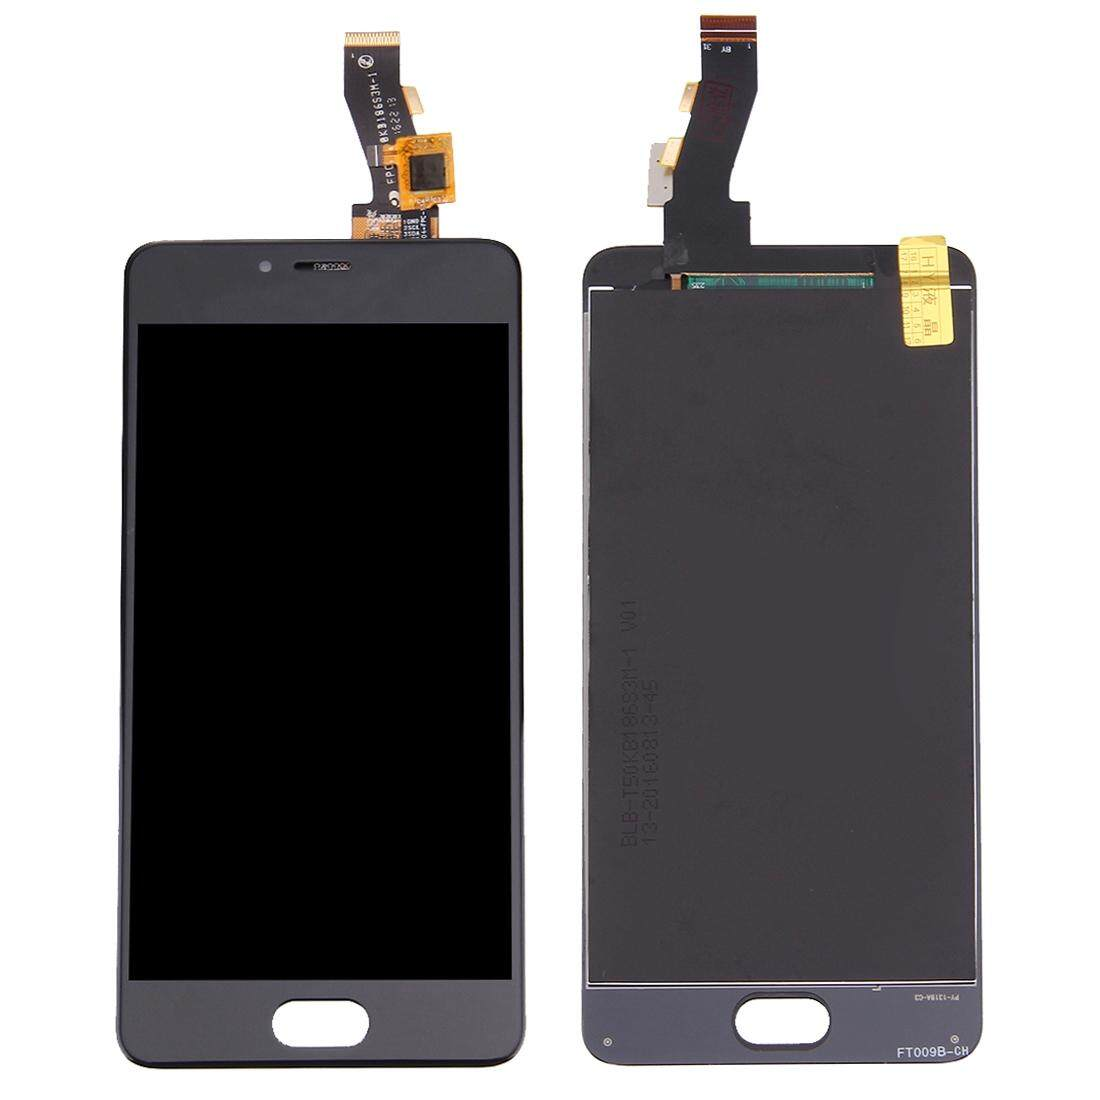 iPartsBuy Meizu M3s / Meilan 3s LCD Screen + Touch Screen Digitizer Assembly(Black)